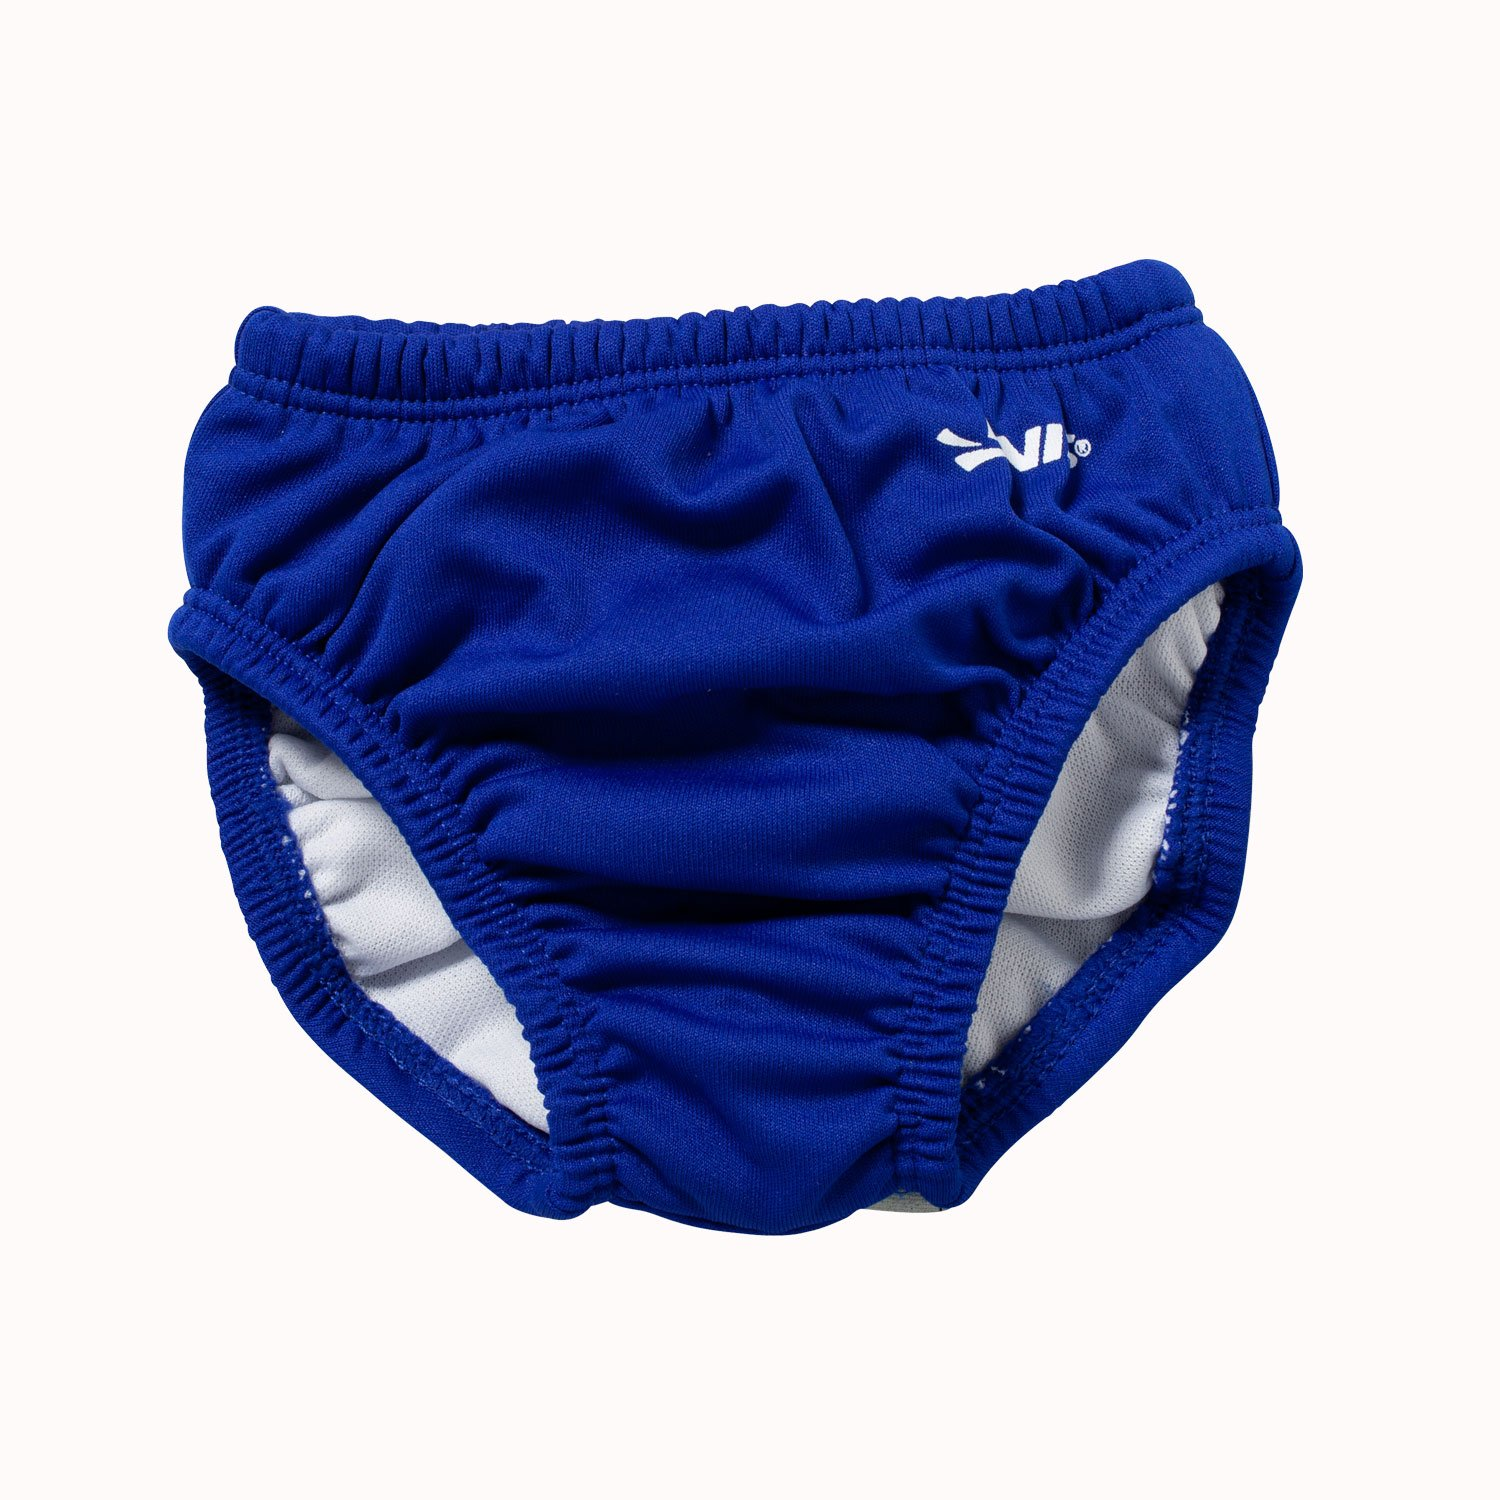 Swim Diaper  - Solid Royal 3T